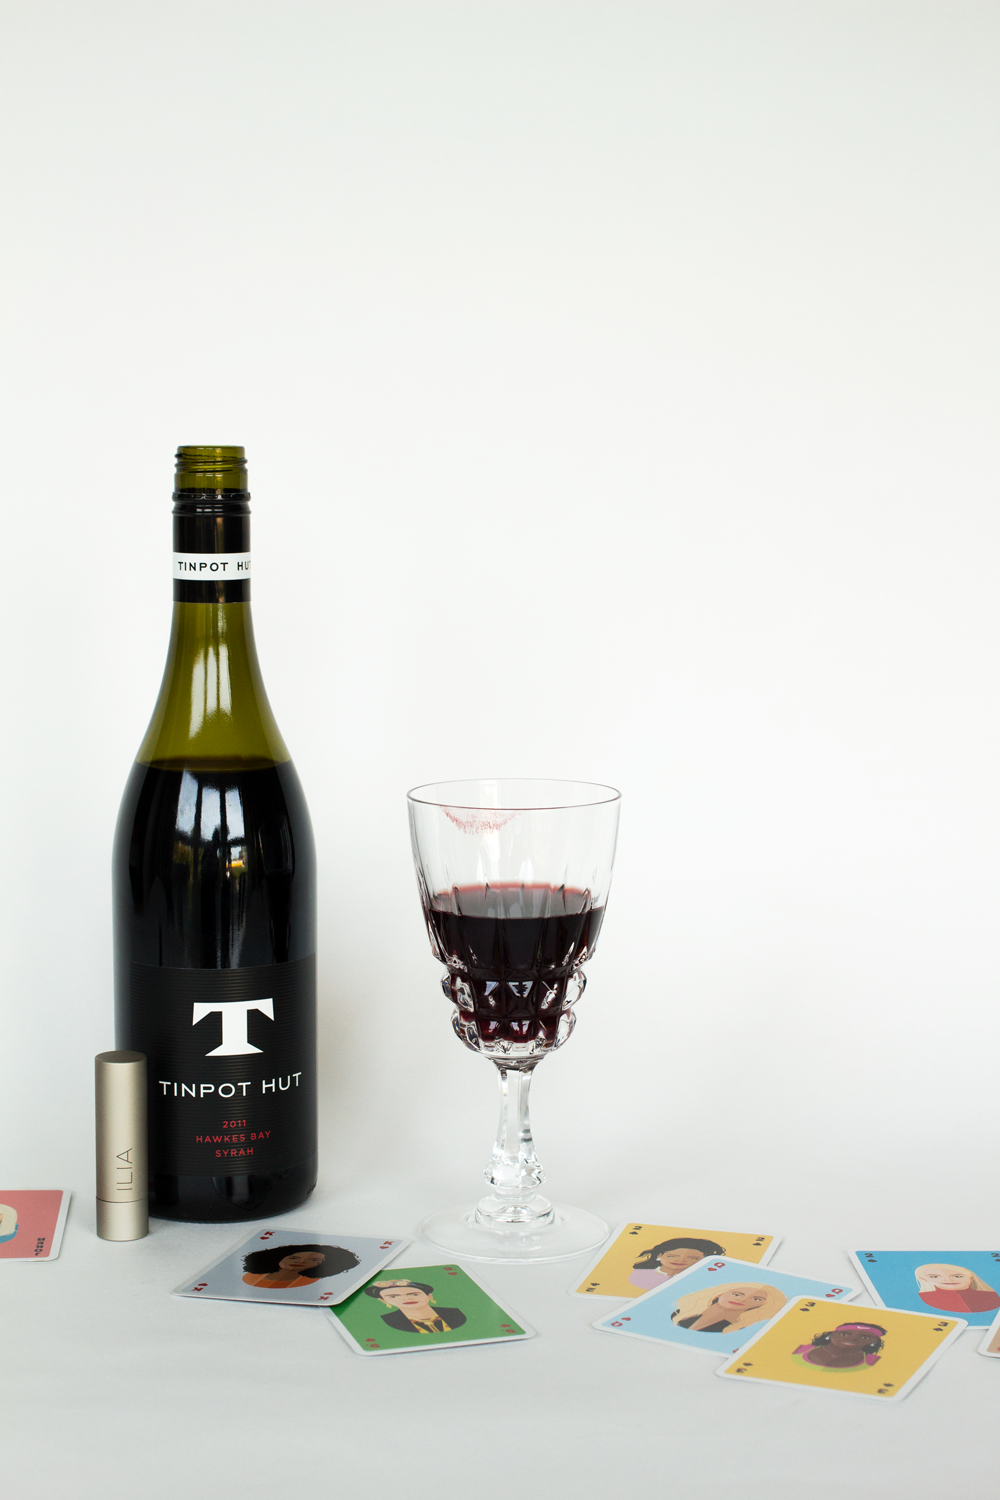 Wine-Review-Tinpot-Hut-Syrah-2011-by-Bottle-Bitches.png